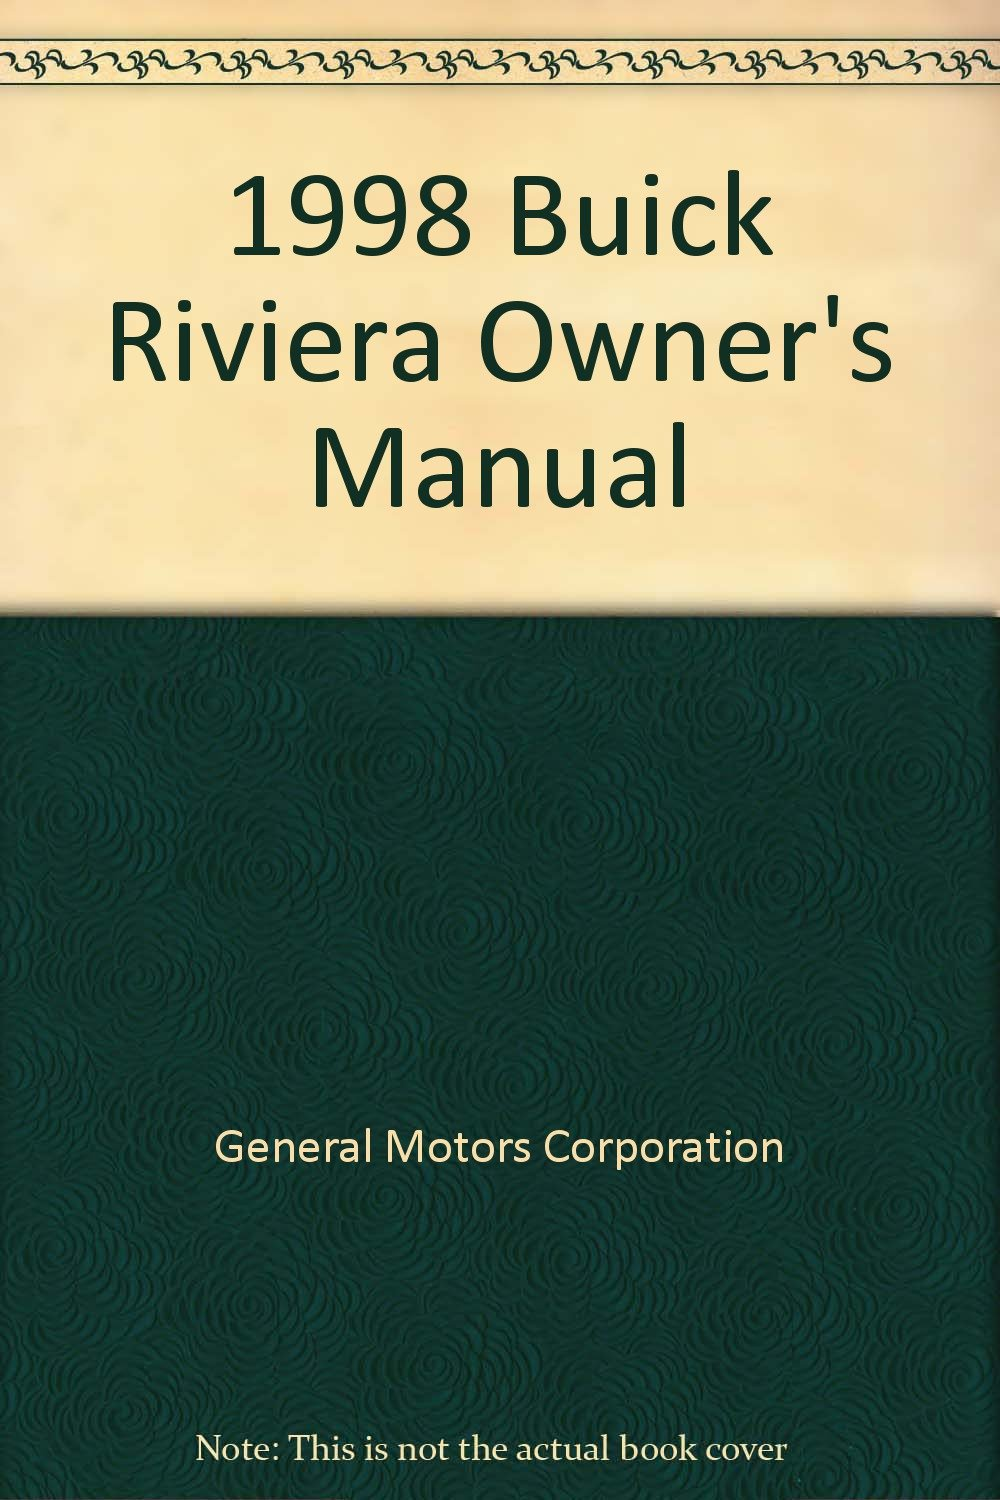 1998 Buick Riviera Owner's Manual: General Motors Corporation: Amazon.com:  Books